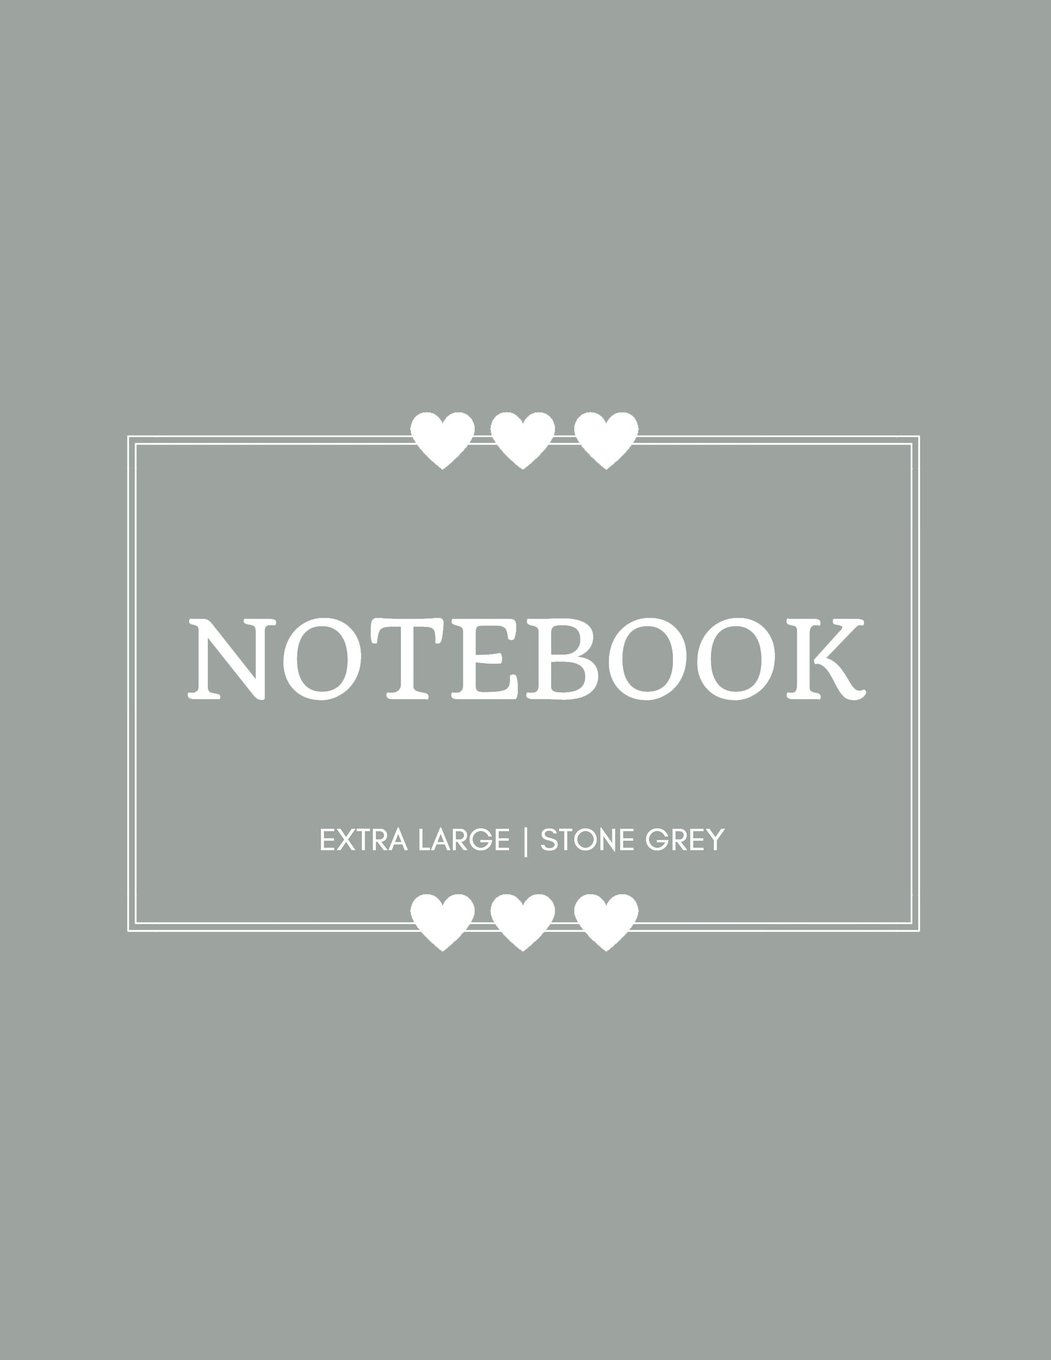 Notebook Extra Large: Stone Grey: Notebook 8.5 x 11: Notebook 400 Pages pdf epub